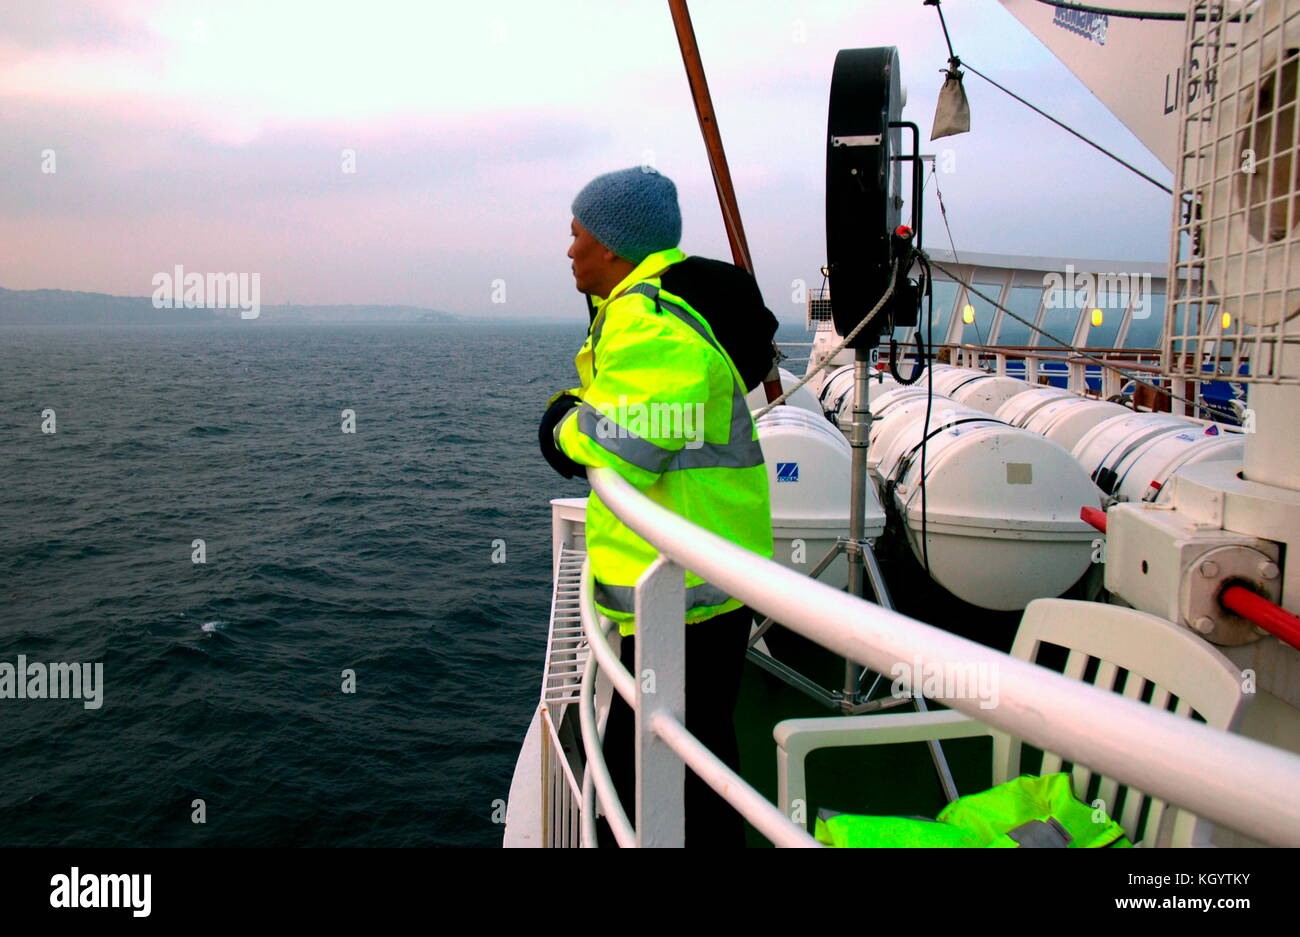 AJAXNETPHOTO.15 OCT 2006. GUERNSEY, C.I. - ANTI-PIRACY - TERRORIST - SECURITY WATCH. A CREW MEMBER OF THE LINER - Stock Image